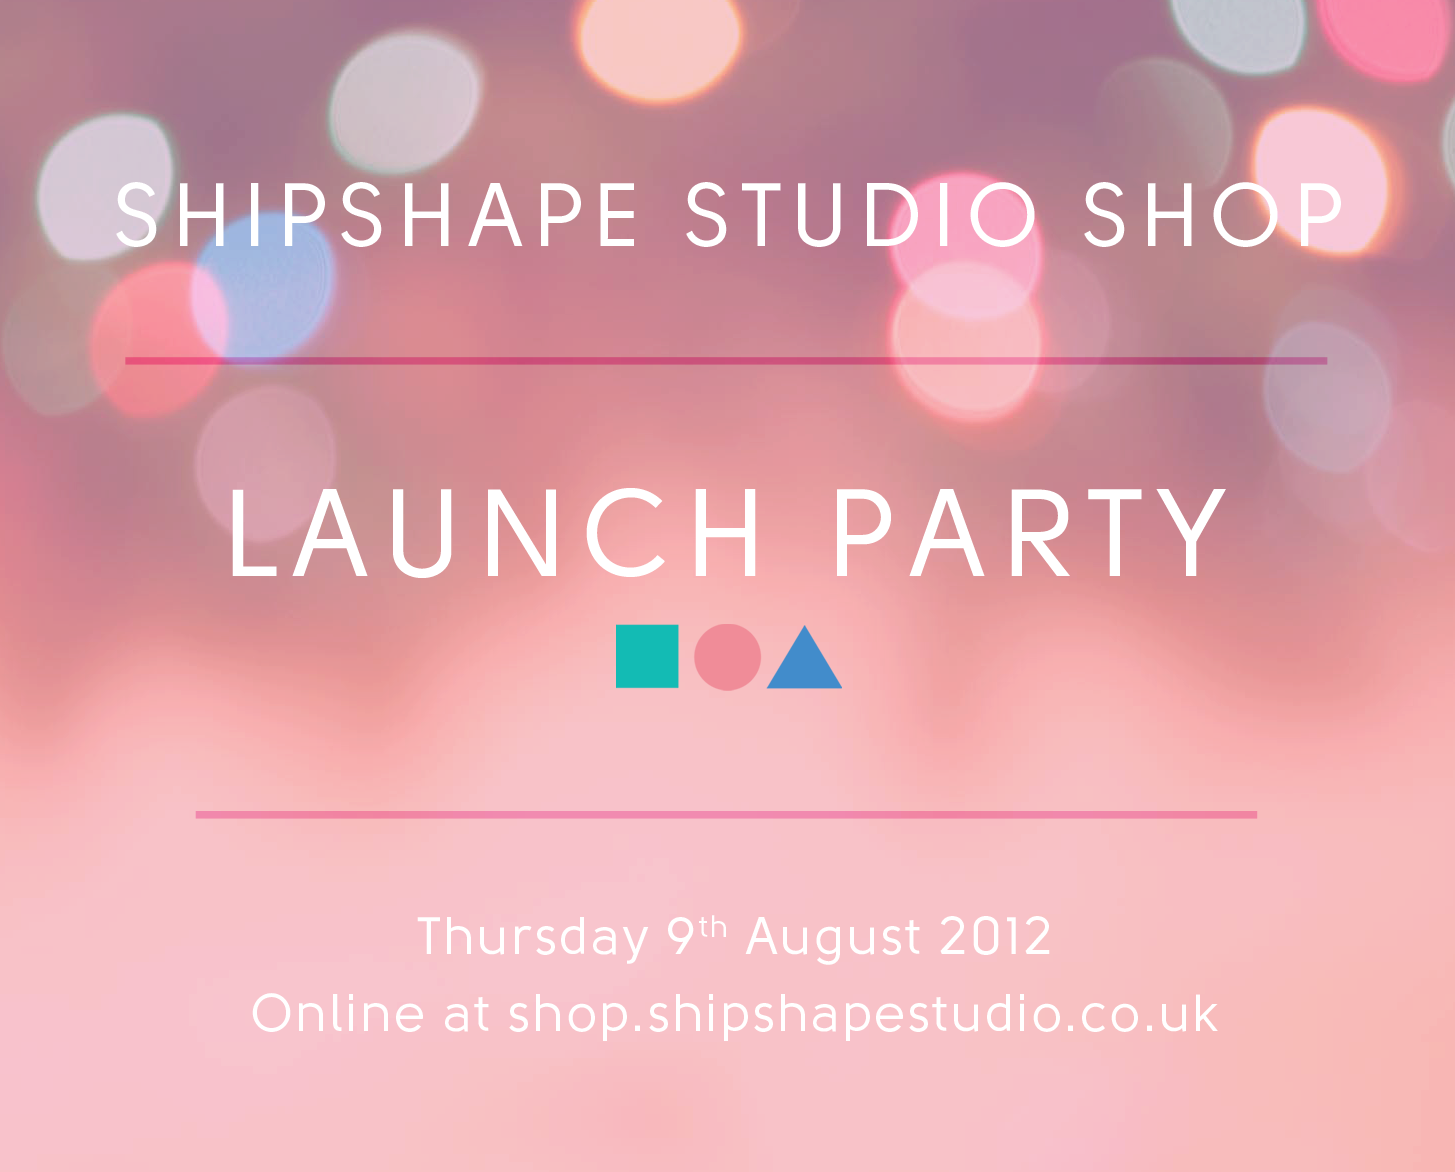 Shipshape Studio shop launch